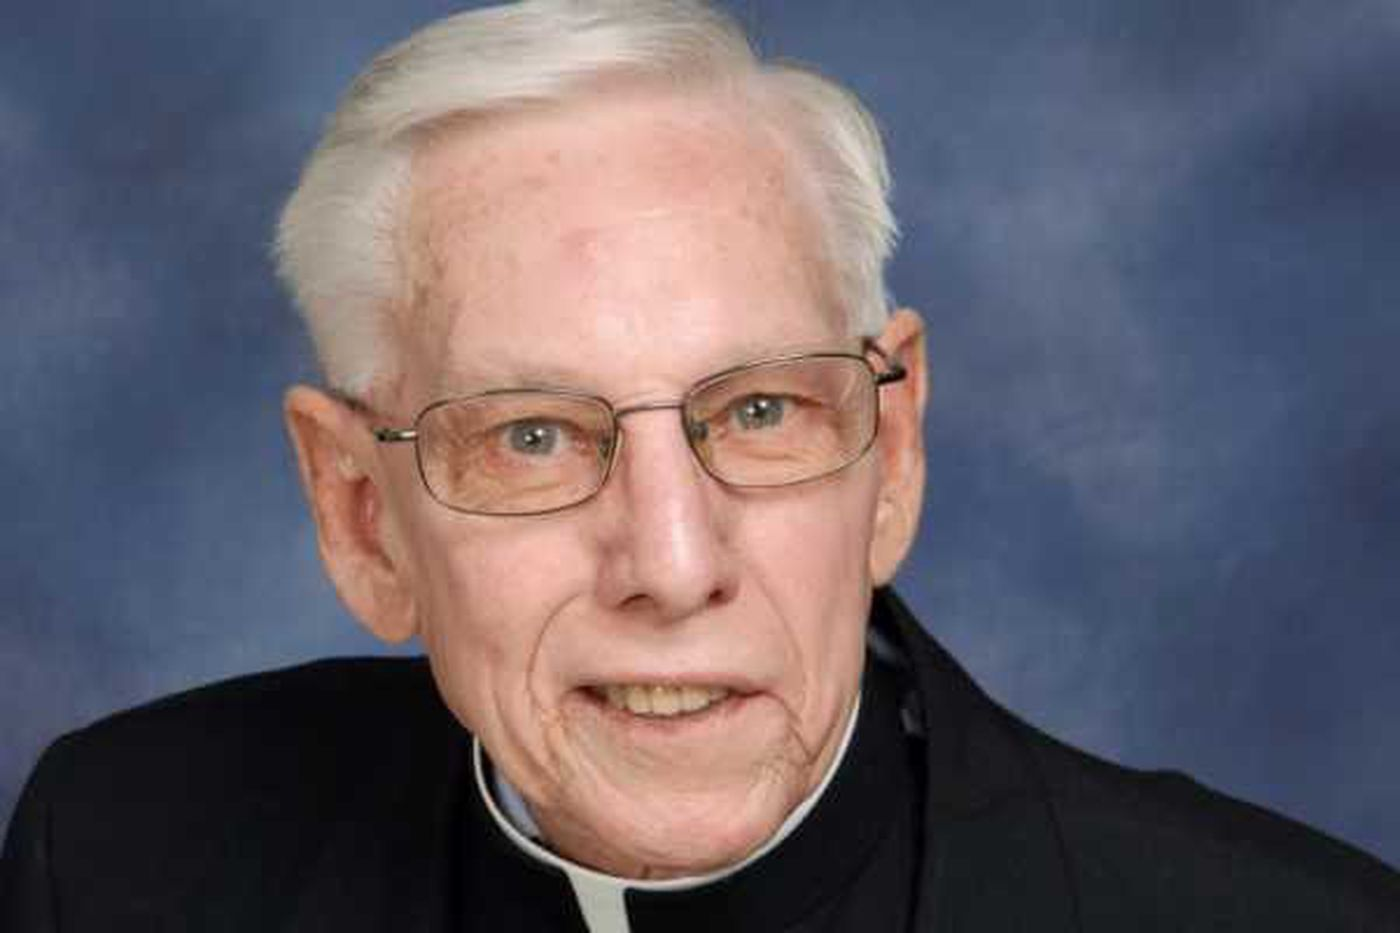 Monsignor admits to embezzling $500K to cover gambling debts, dinners, concert tickets